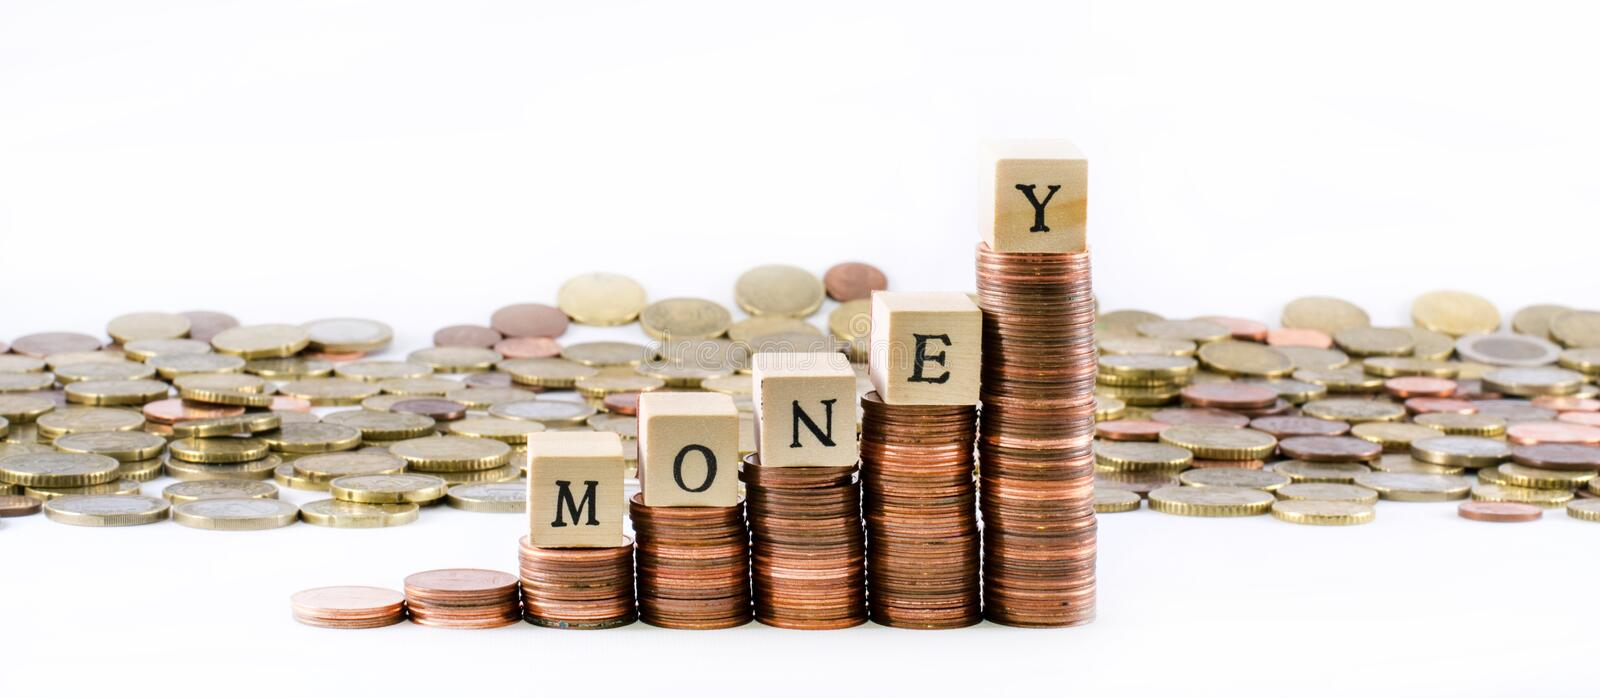 Cylinders of euro coins and the word money formed by wooden little cubes royalty free stock images